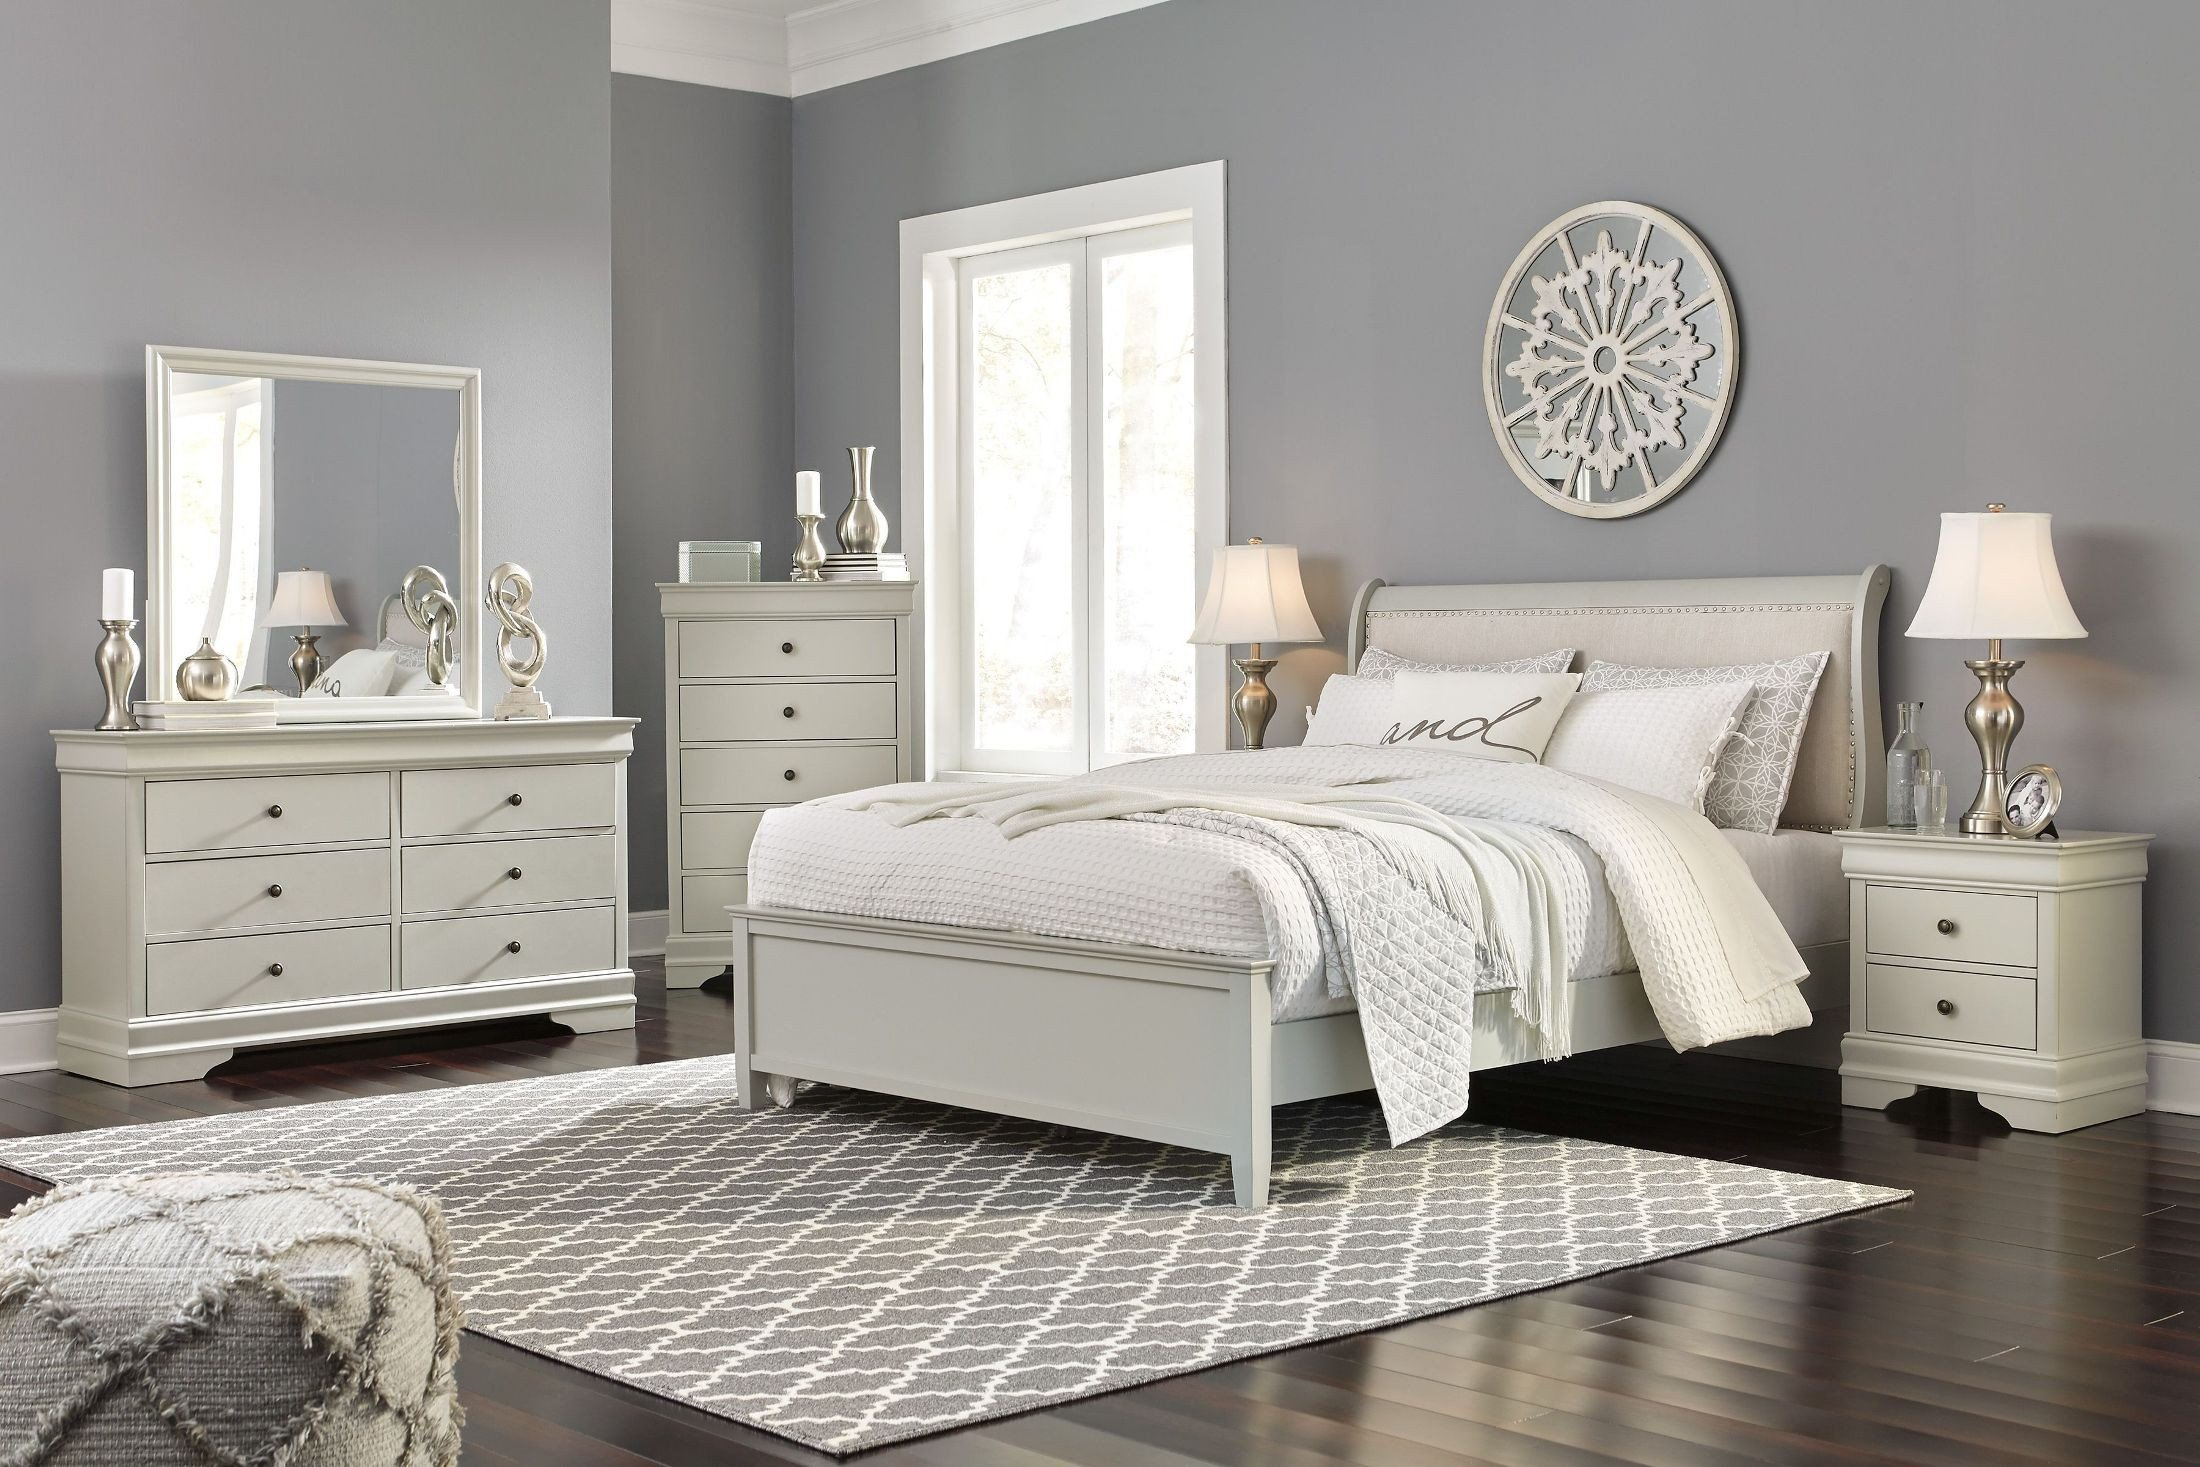 Vaughan Bassett Bedroom Set Inspirational Emma Mason Signature Jarred 5 Piece Sleigh Bedroom Set In Gray